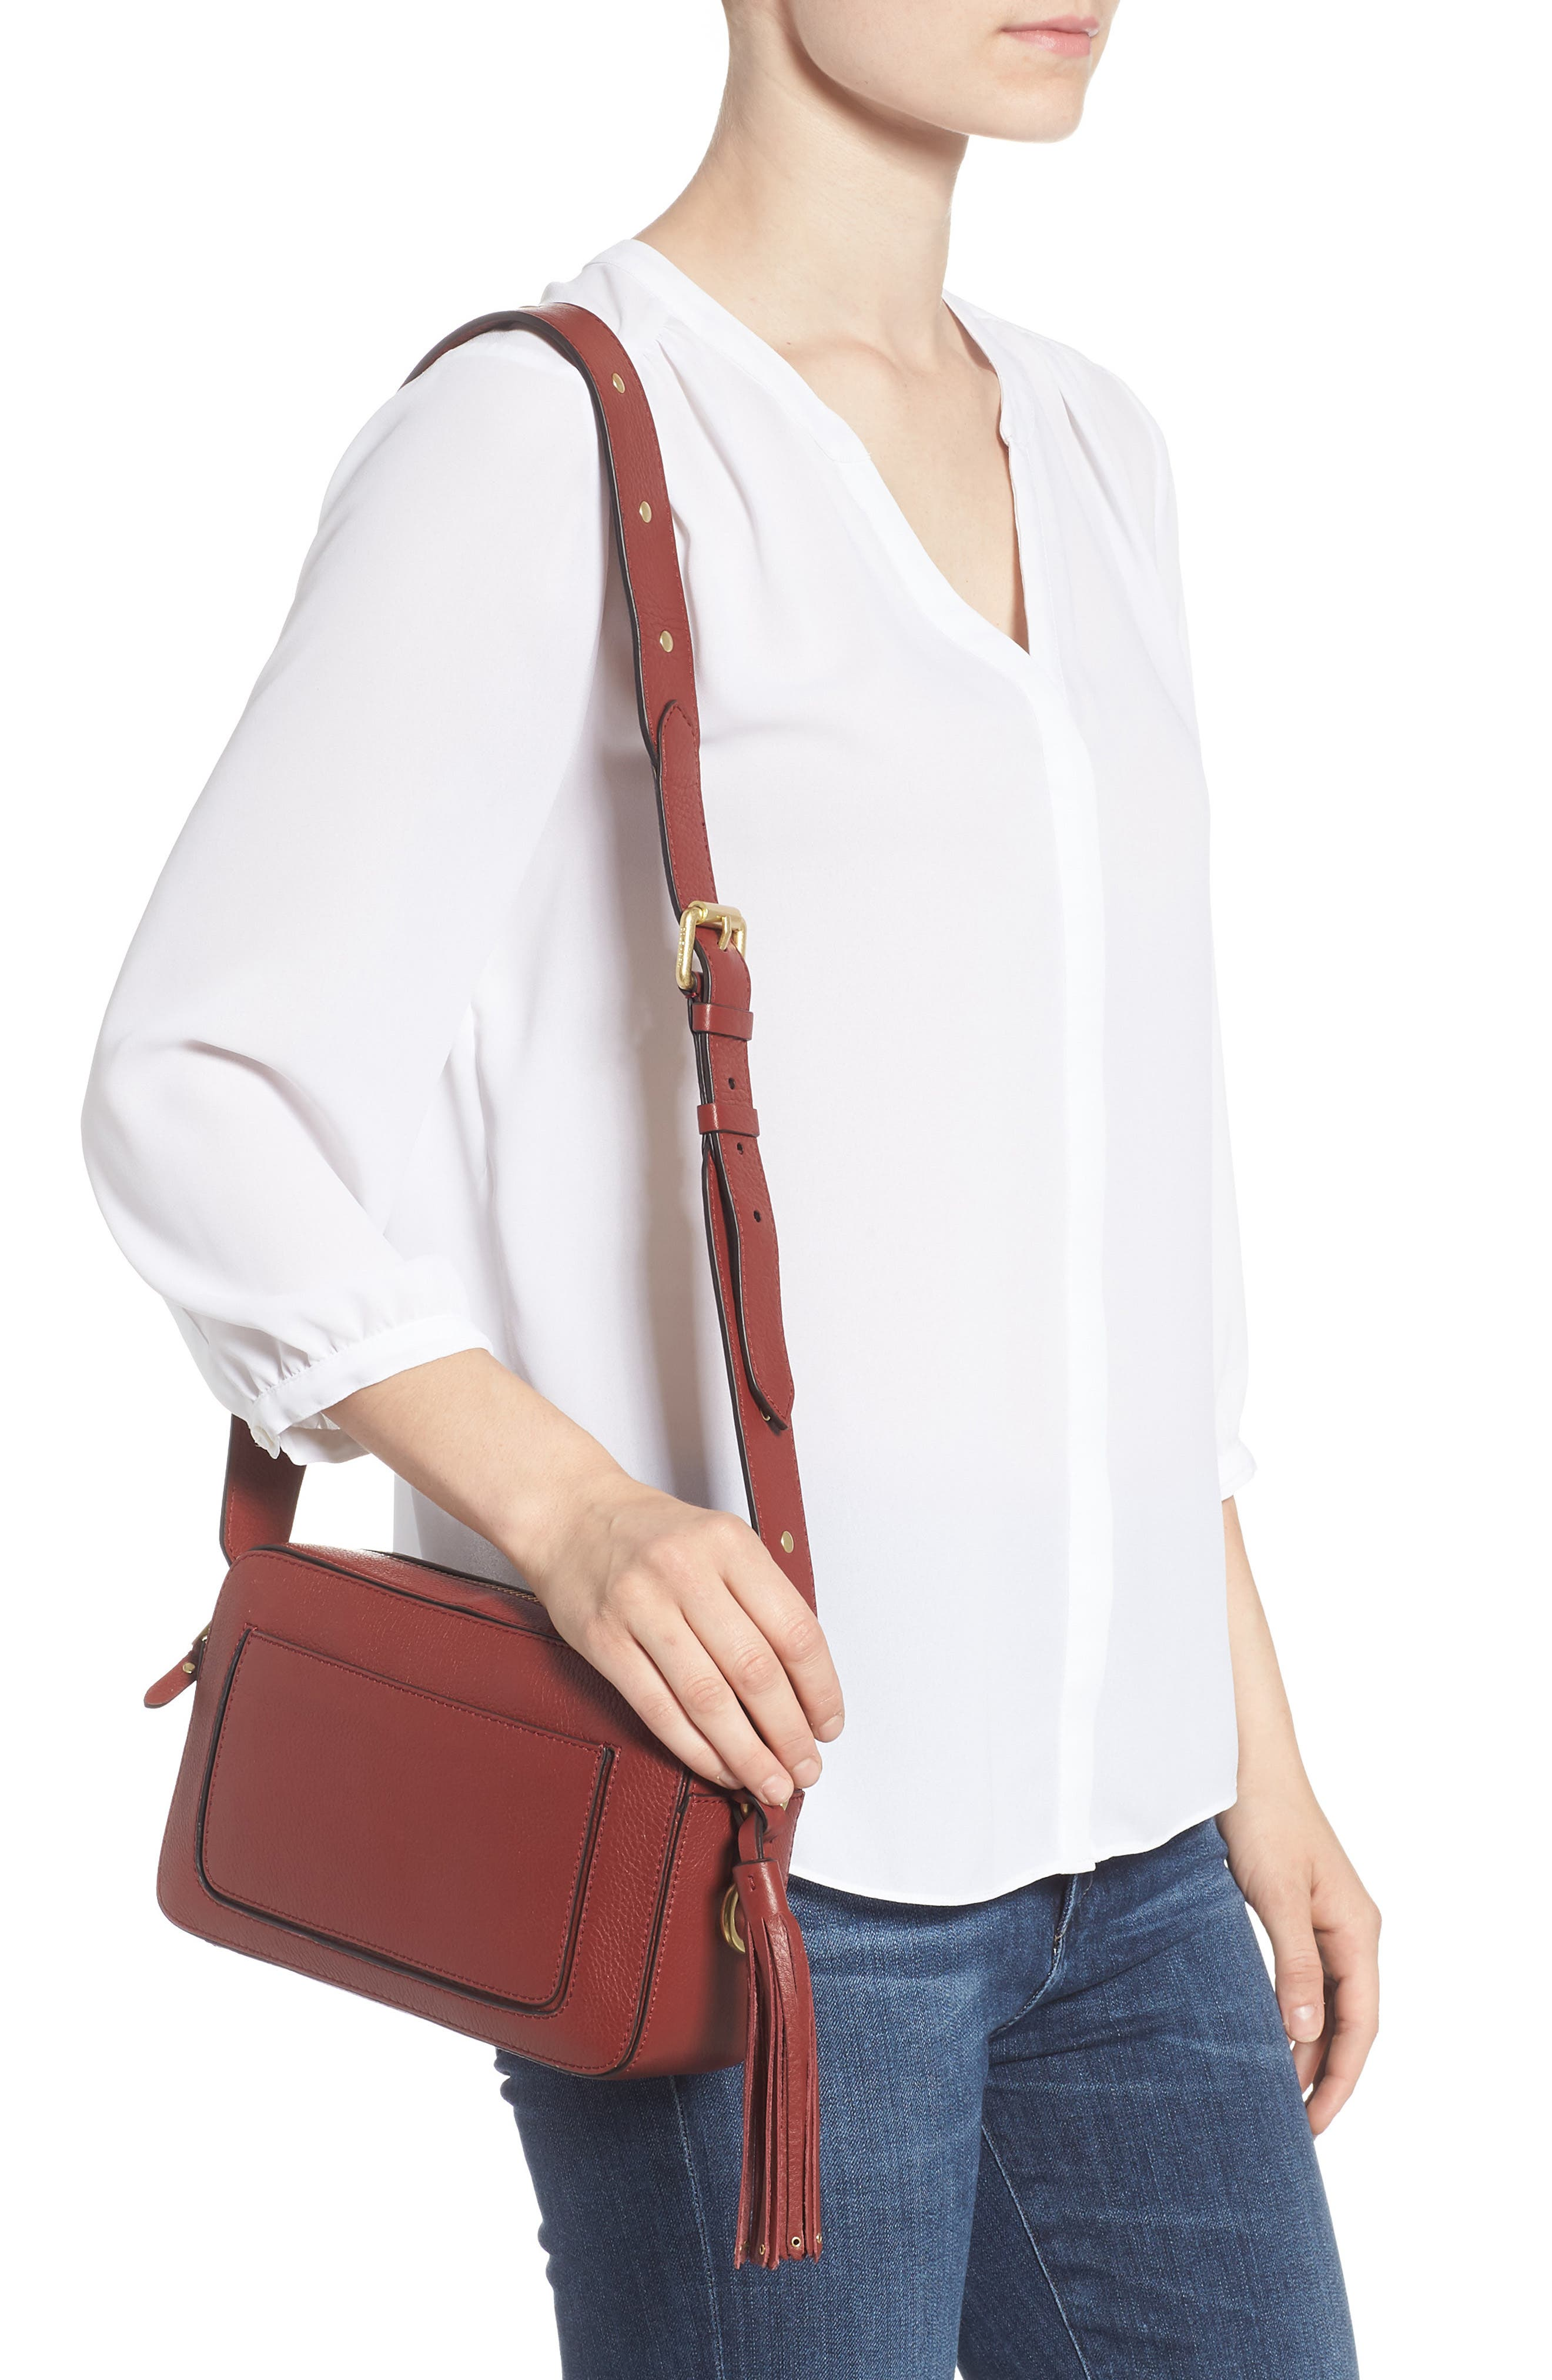 Cassidy RFID Pebbled Leather Camera Bag,                             Alternate thumbnail 6, color,